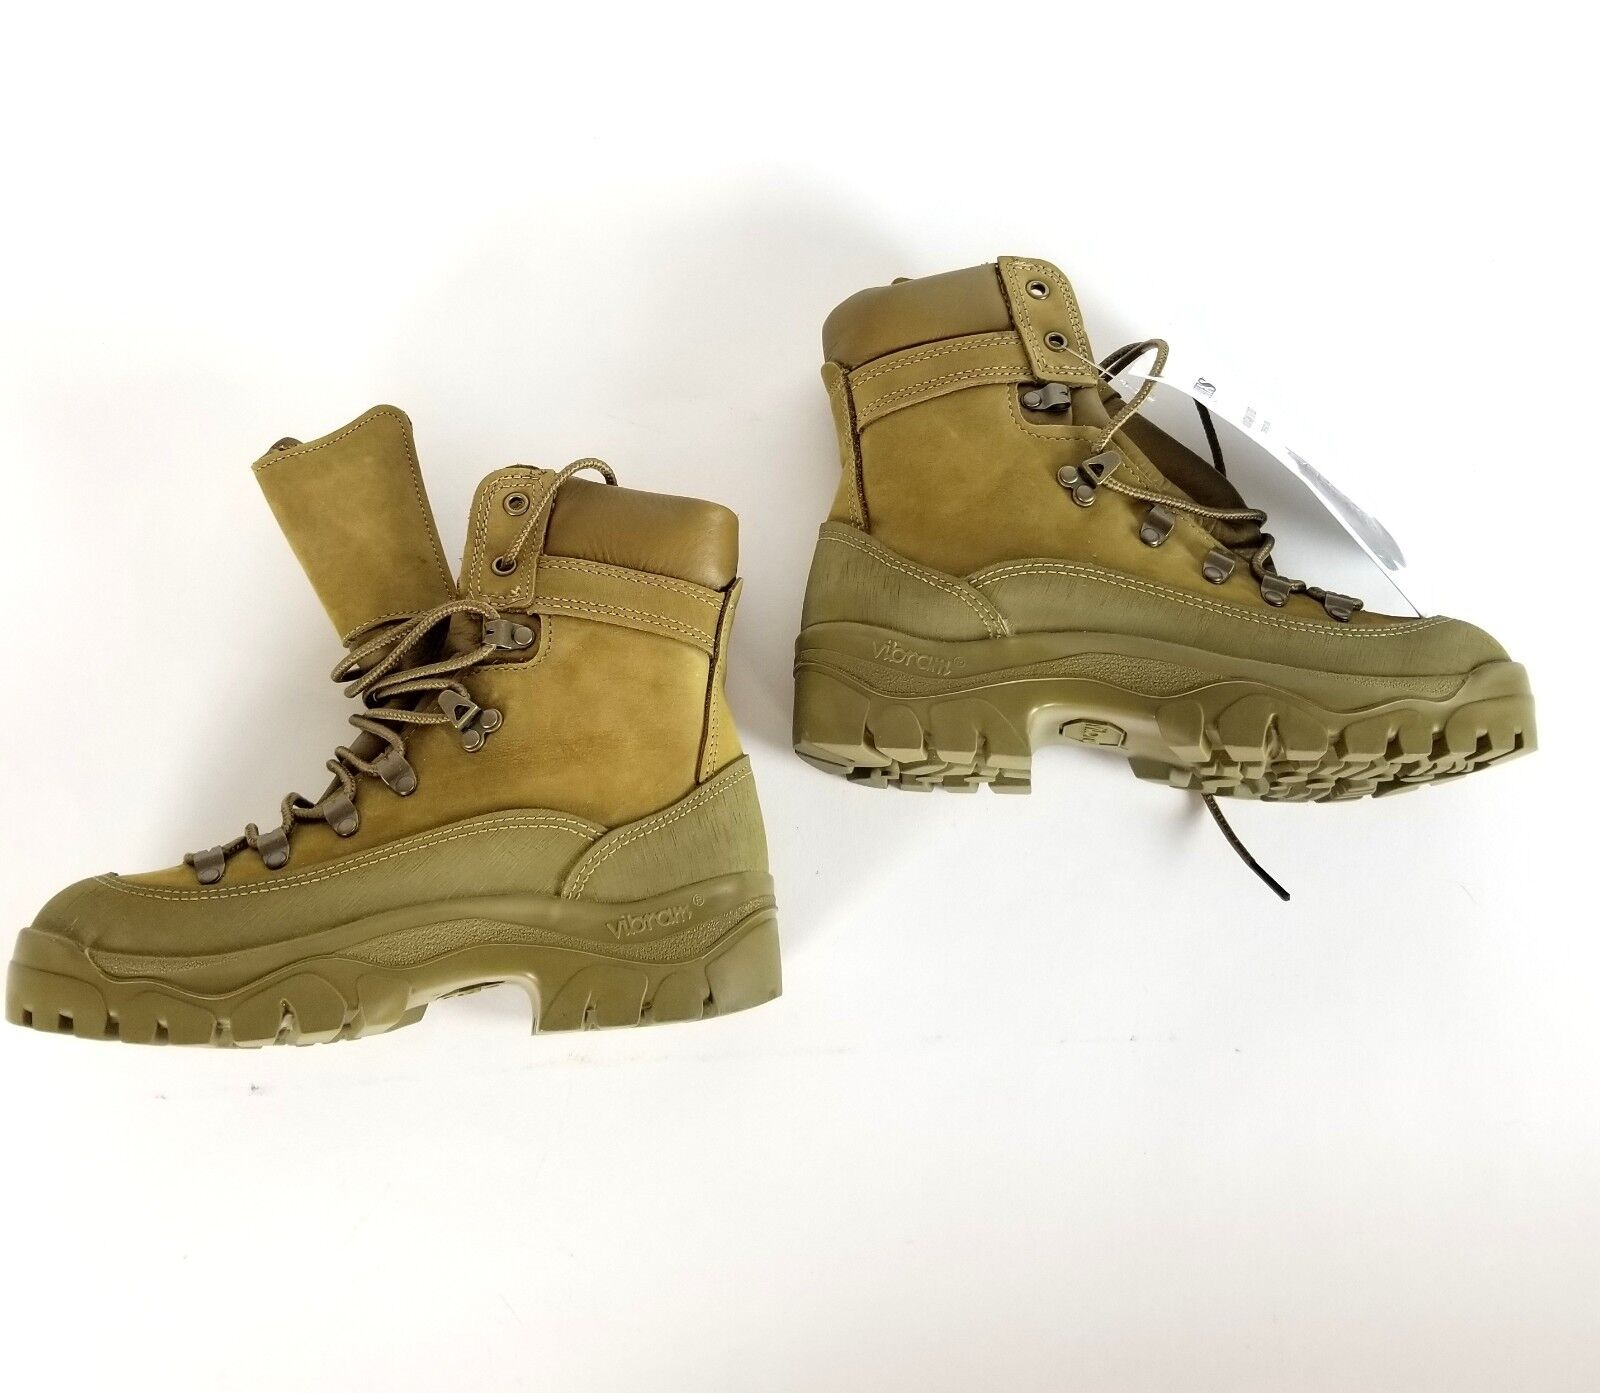 BATES Temperate Weather Hiker Olive Mohave Leather Waterproof Boots Sz 5 R 38